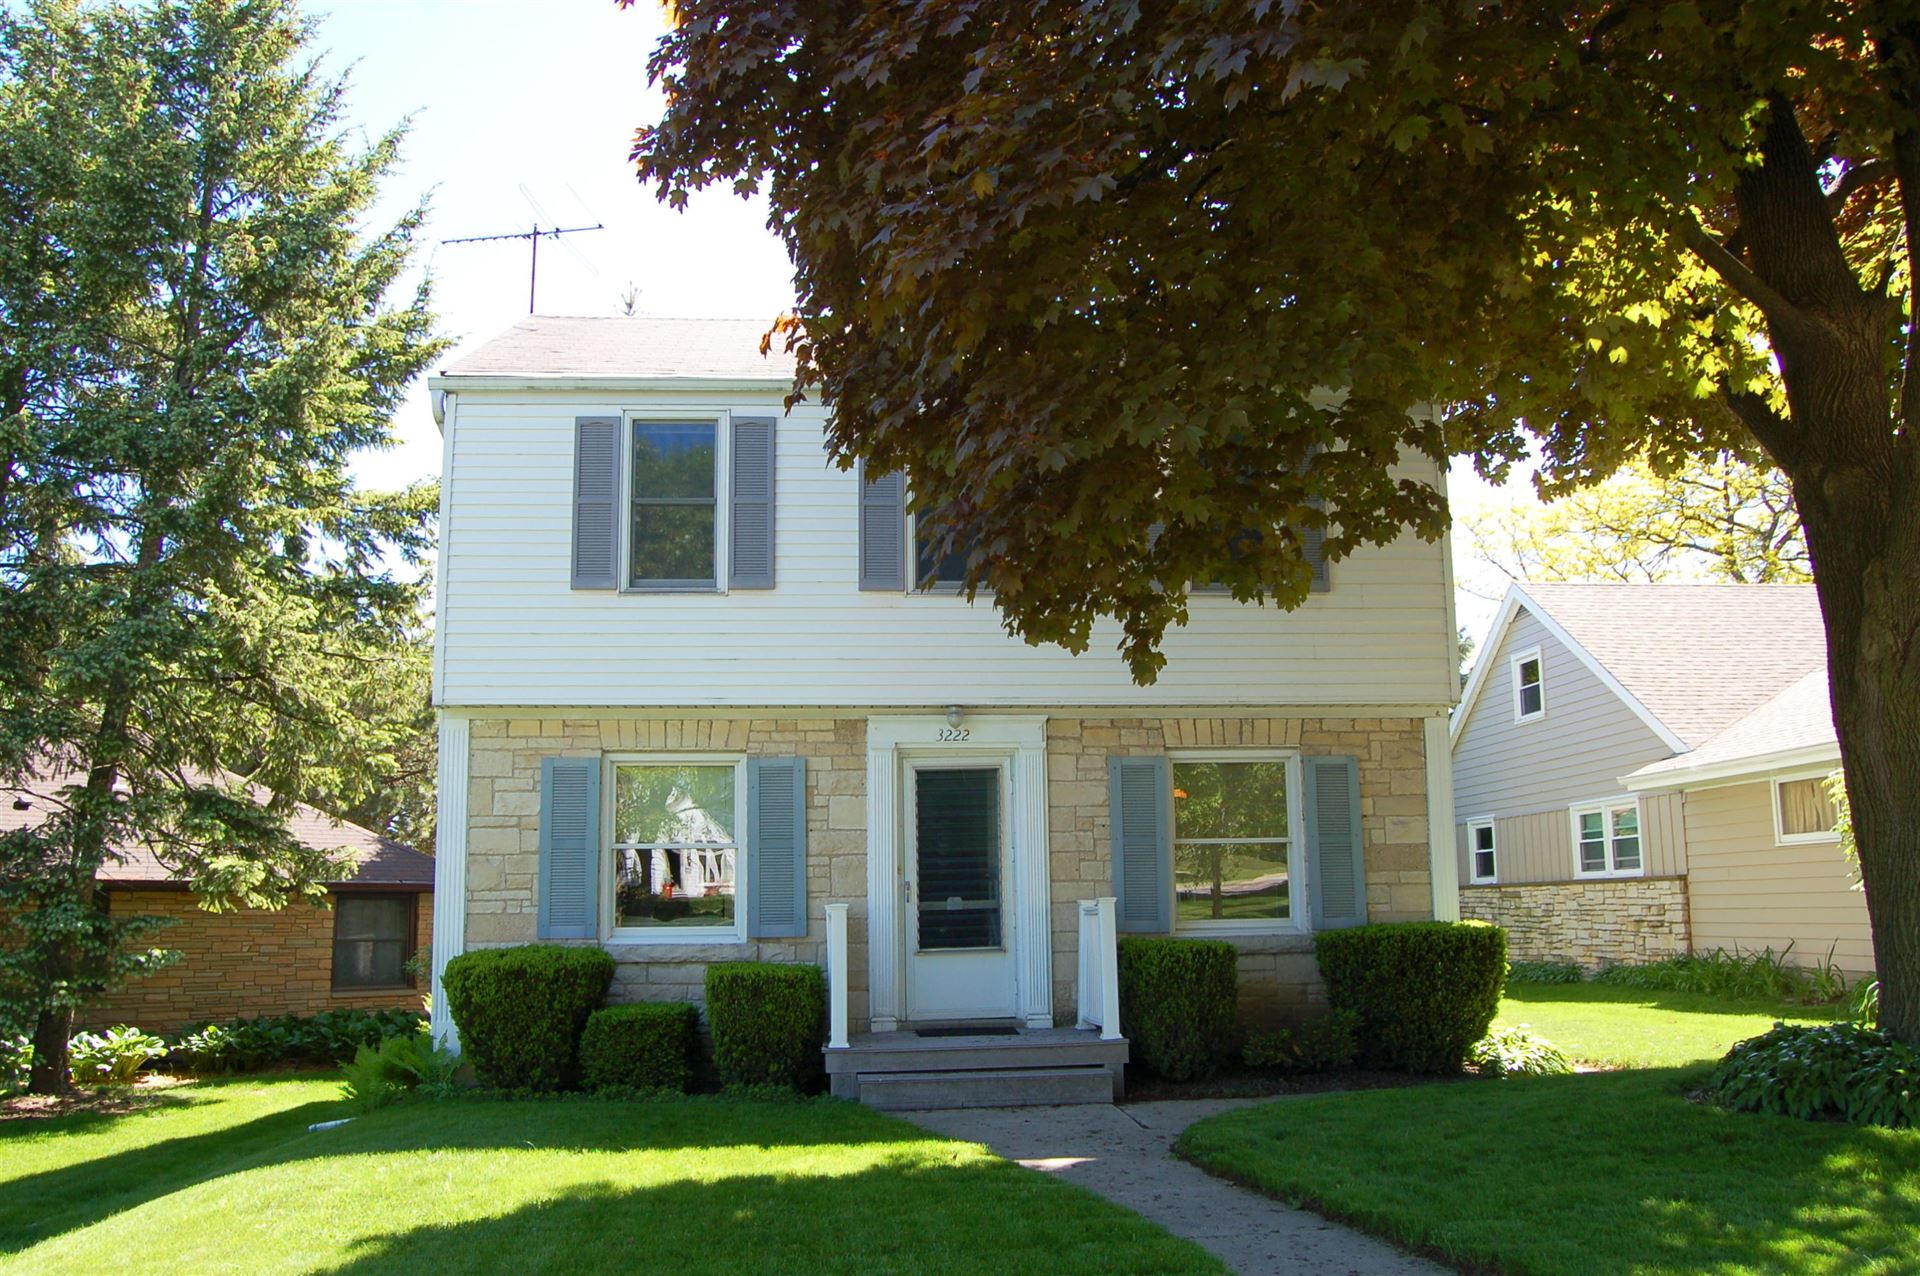 3222 S 45th St, Greenfield, WI 53219 - #: 1691885